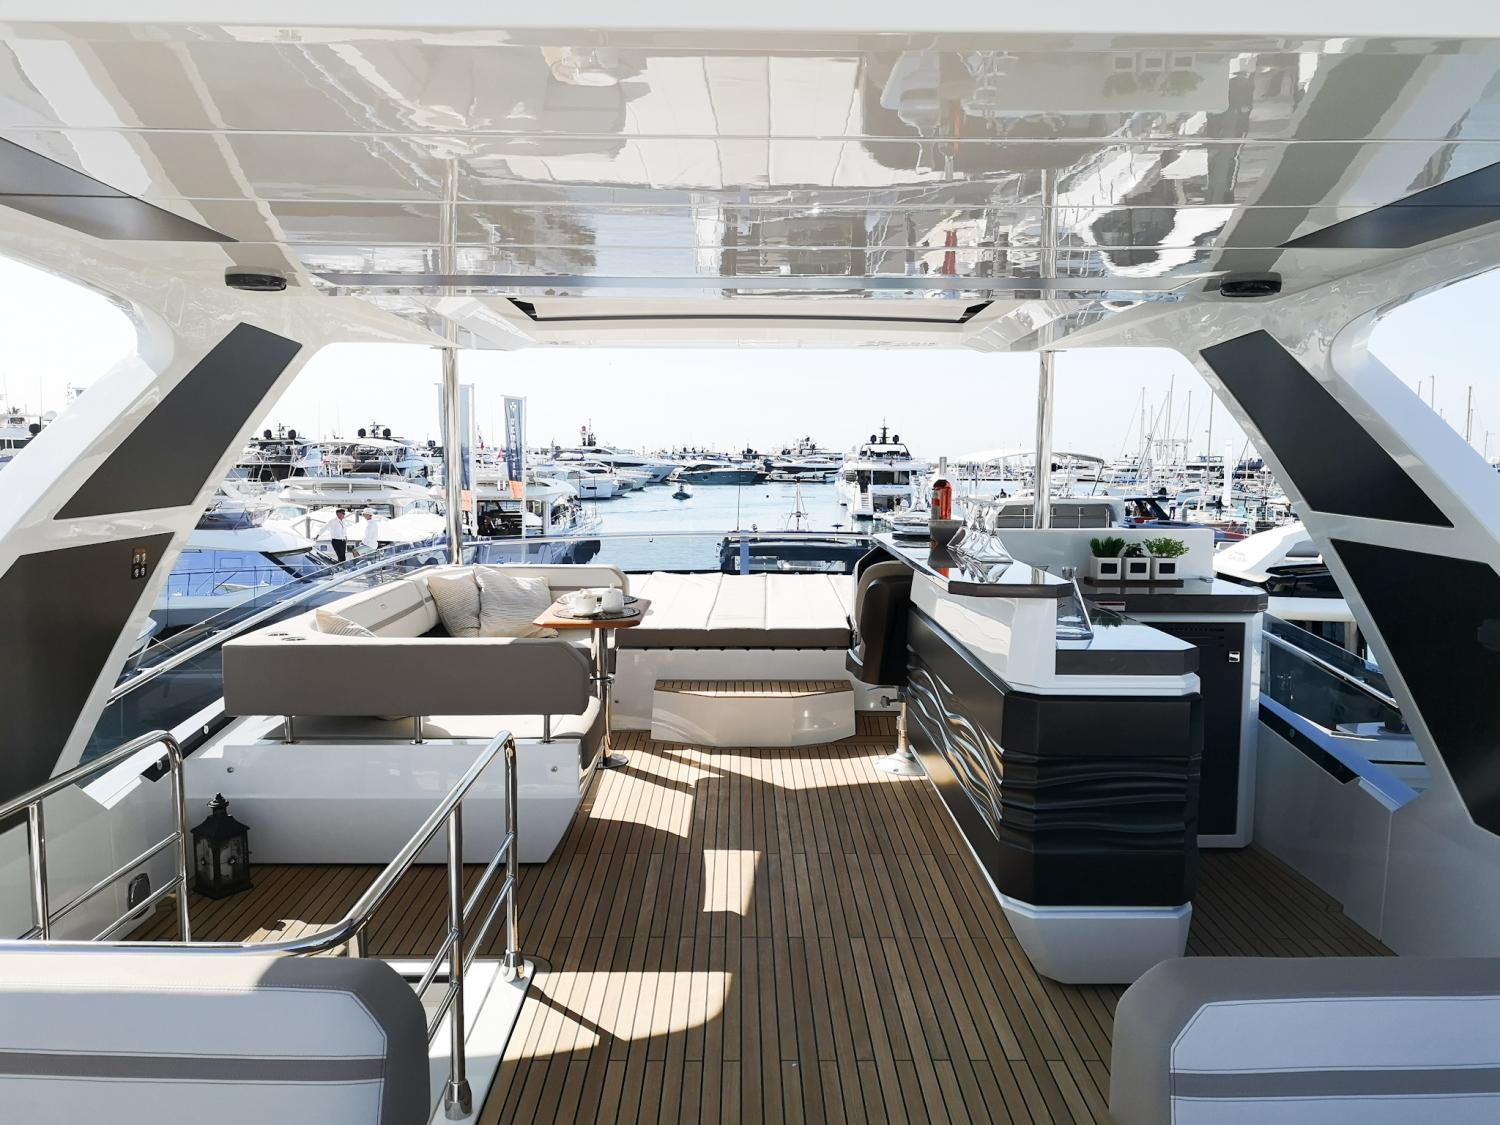 Image 3 for Galeon Yachts new model awarded for design and innovation